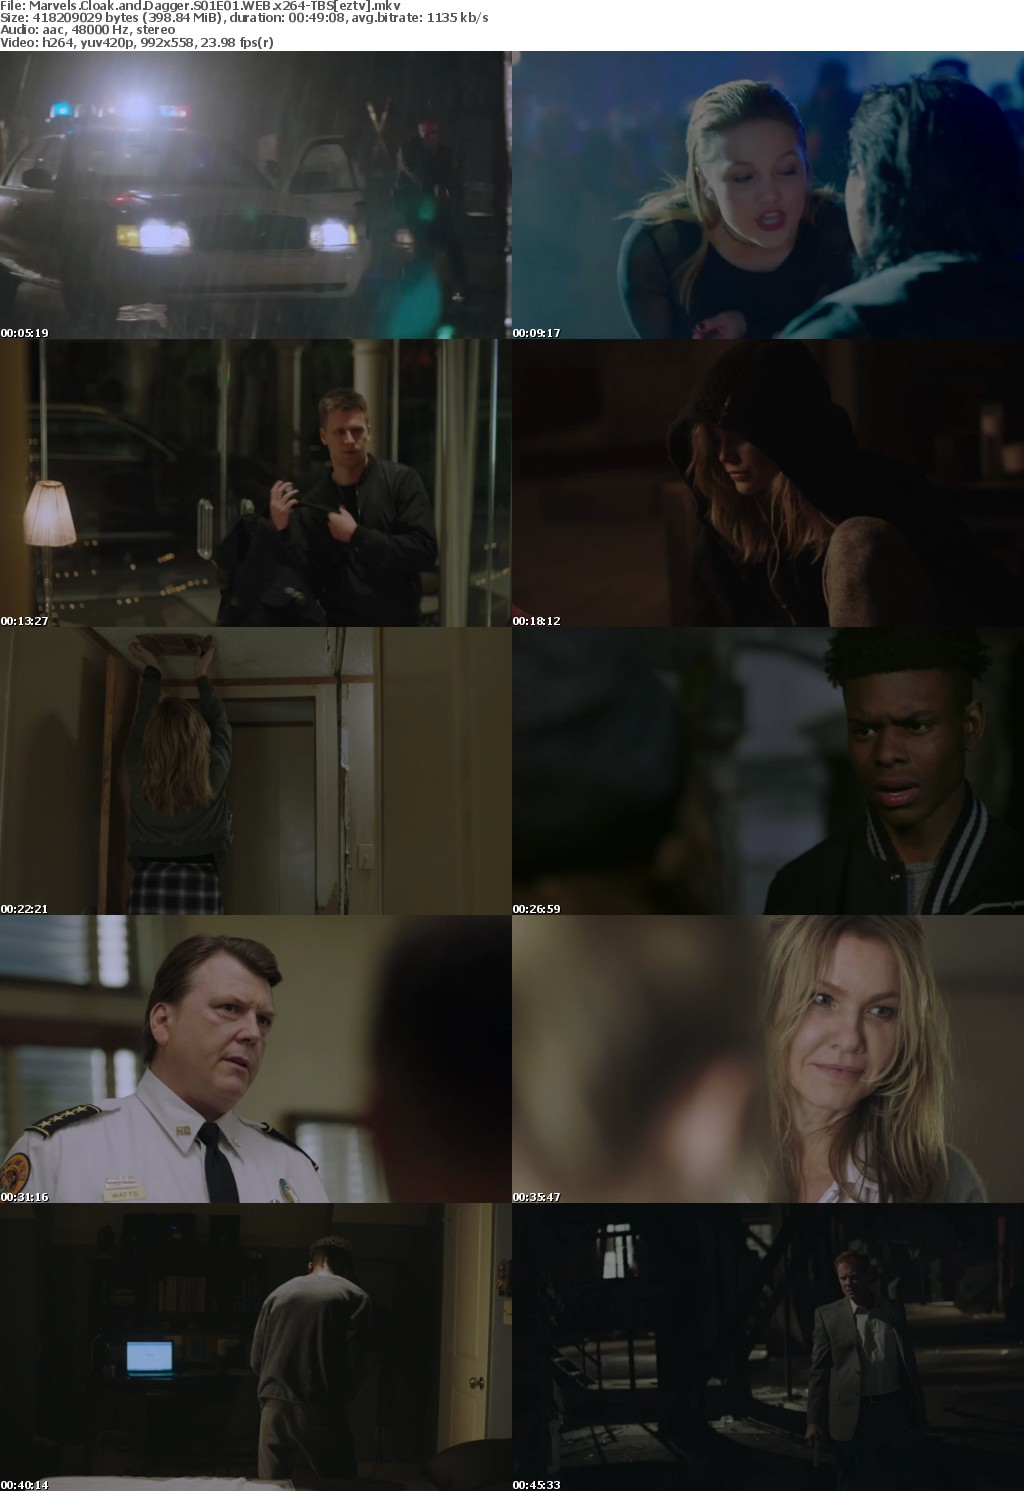 Marvels Cloak and Dagger S01E01 WEB x264-TBS